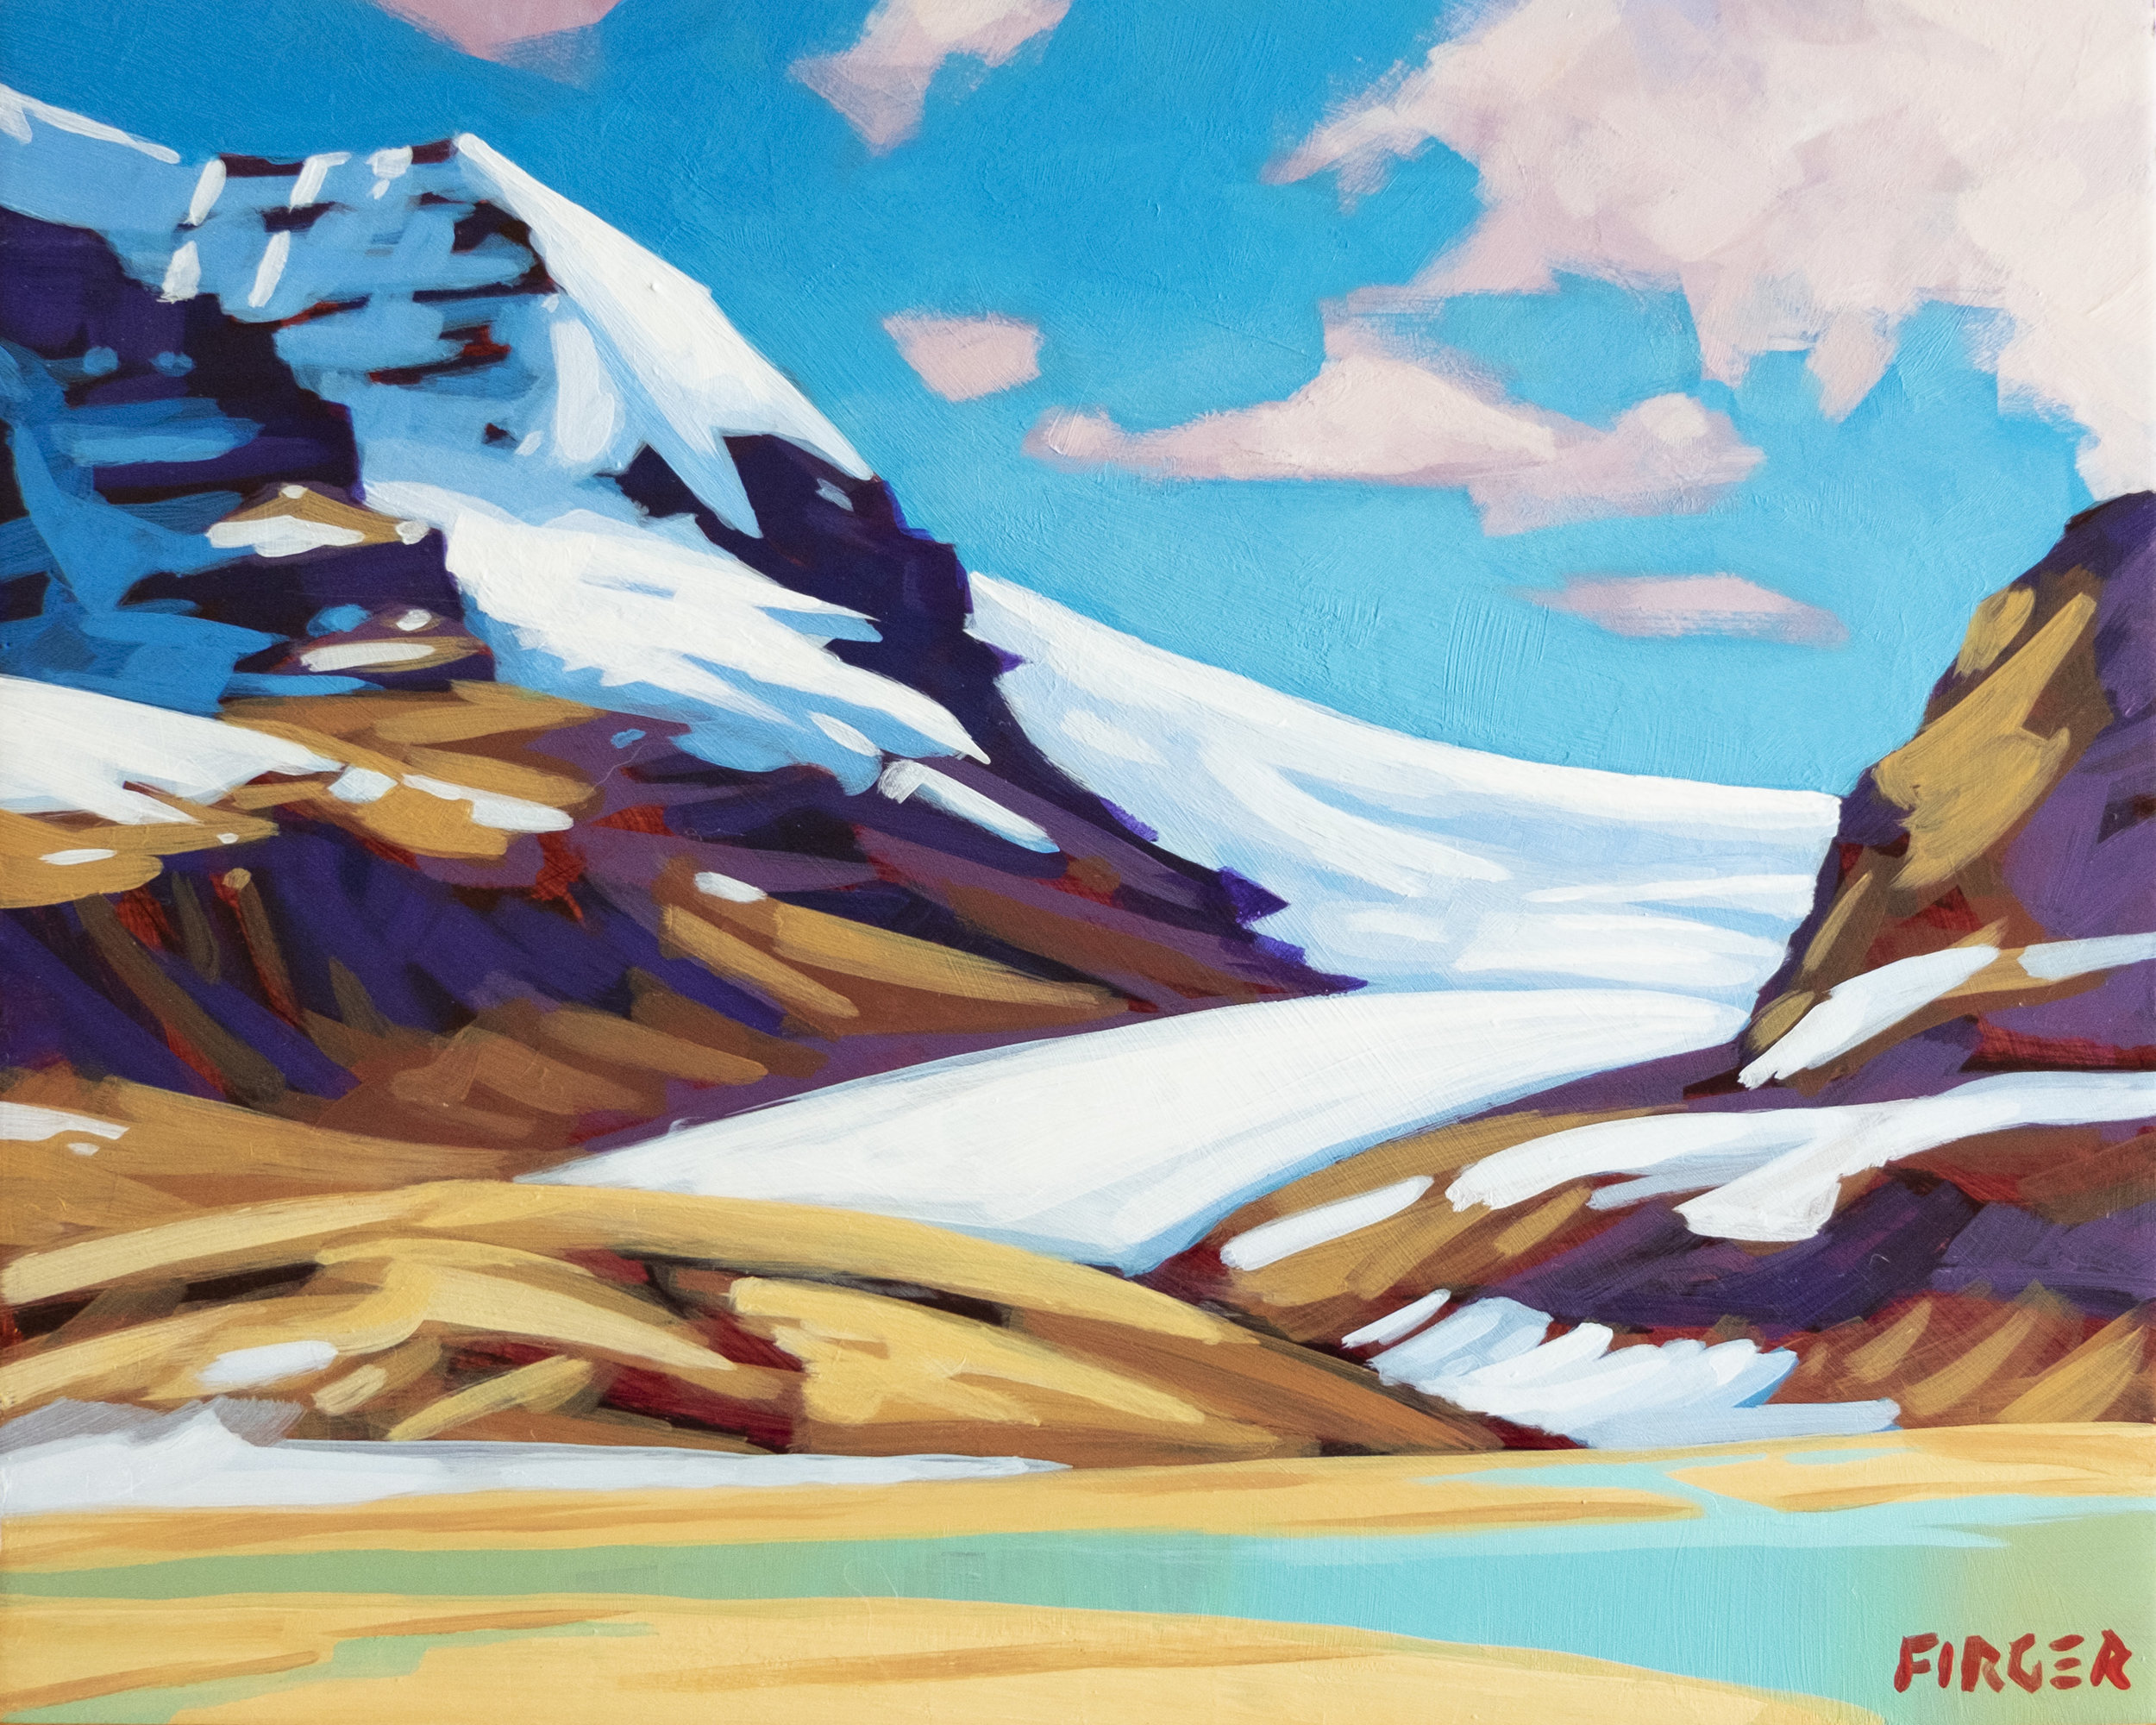 The Icefield - 8 x 10, Acrylic on Panel